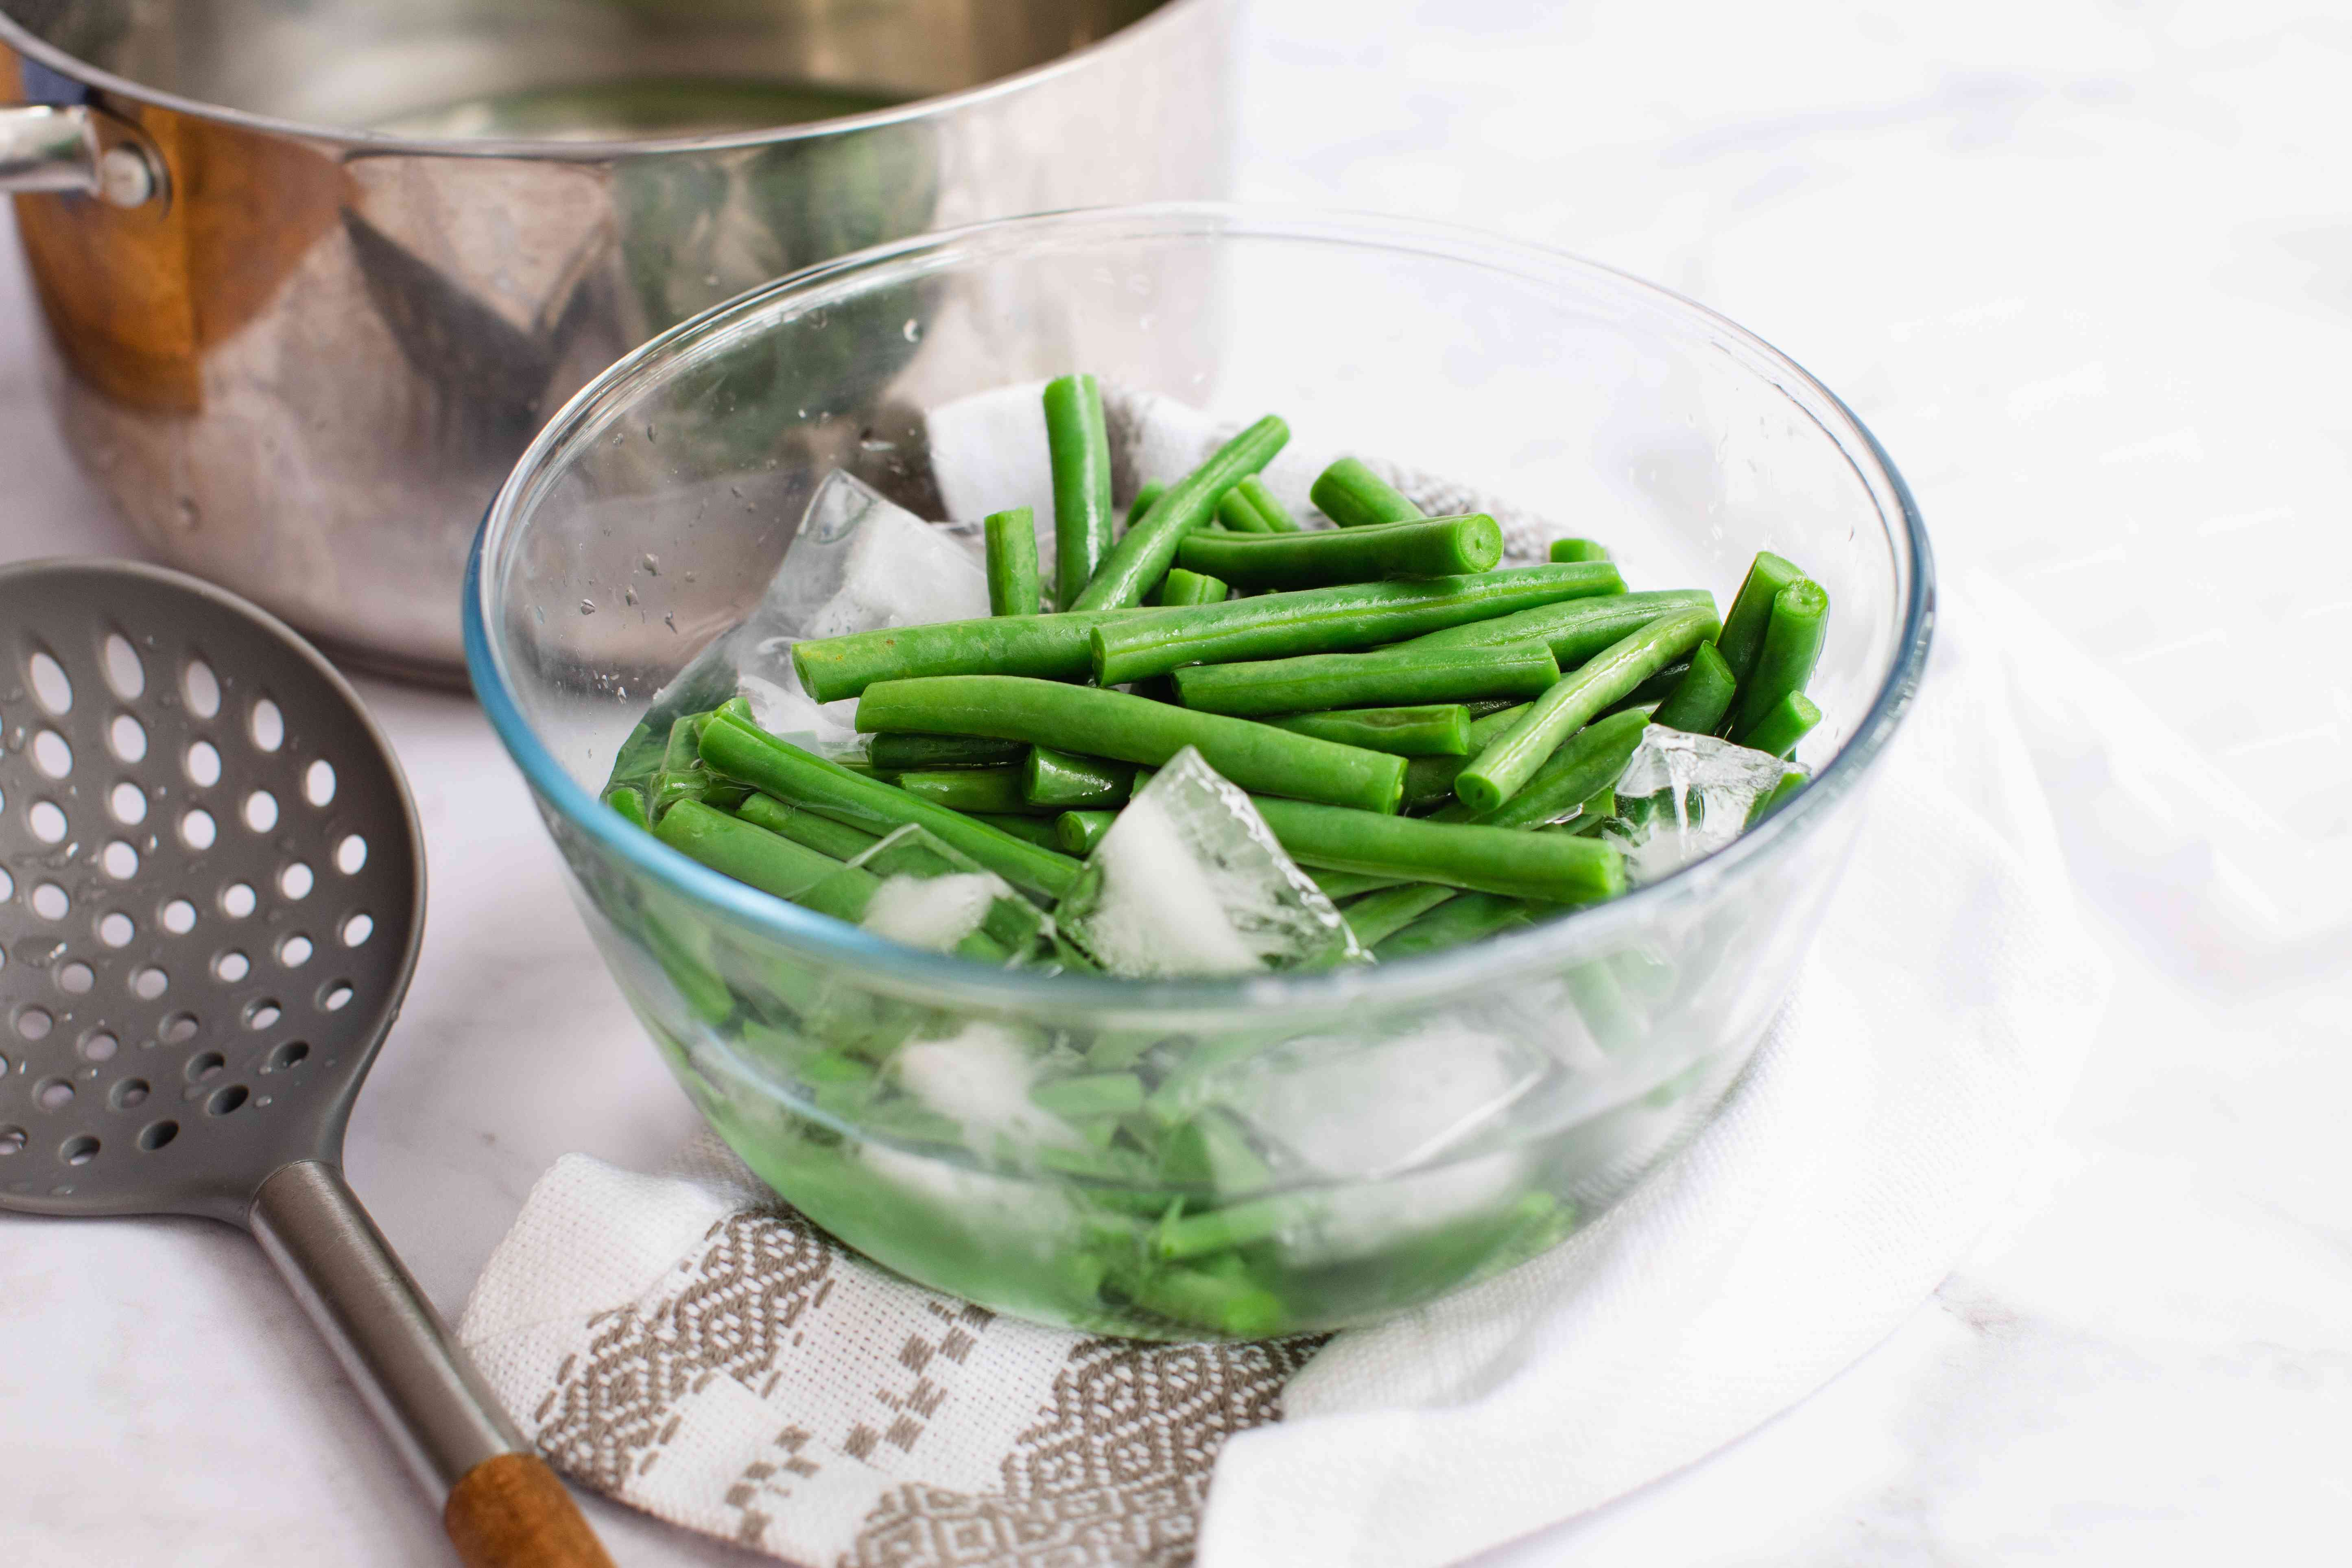 Blanched green beans in a bowl of ice for a green bean salad recipe.